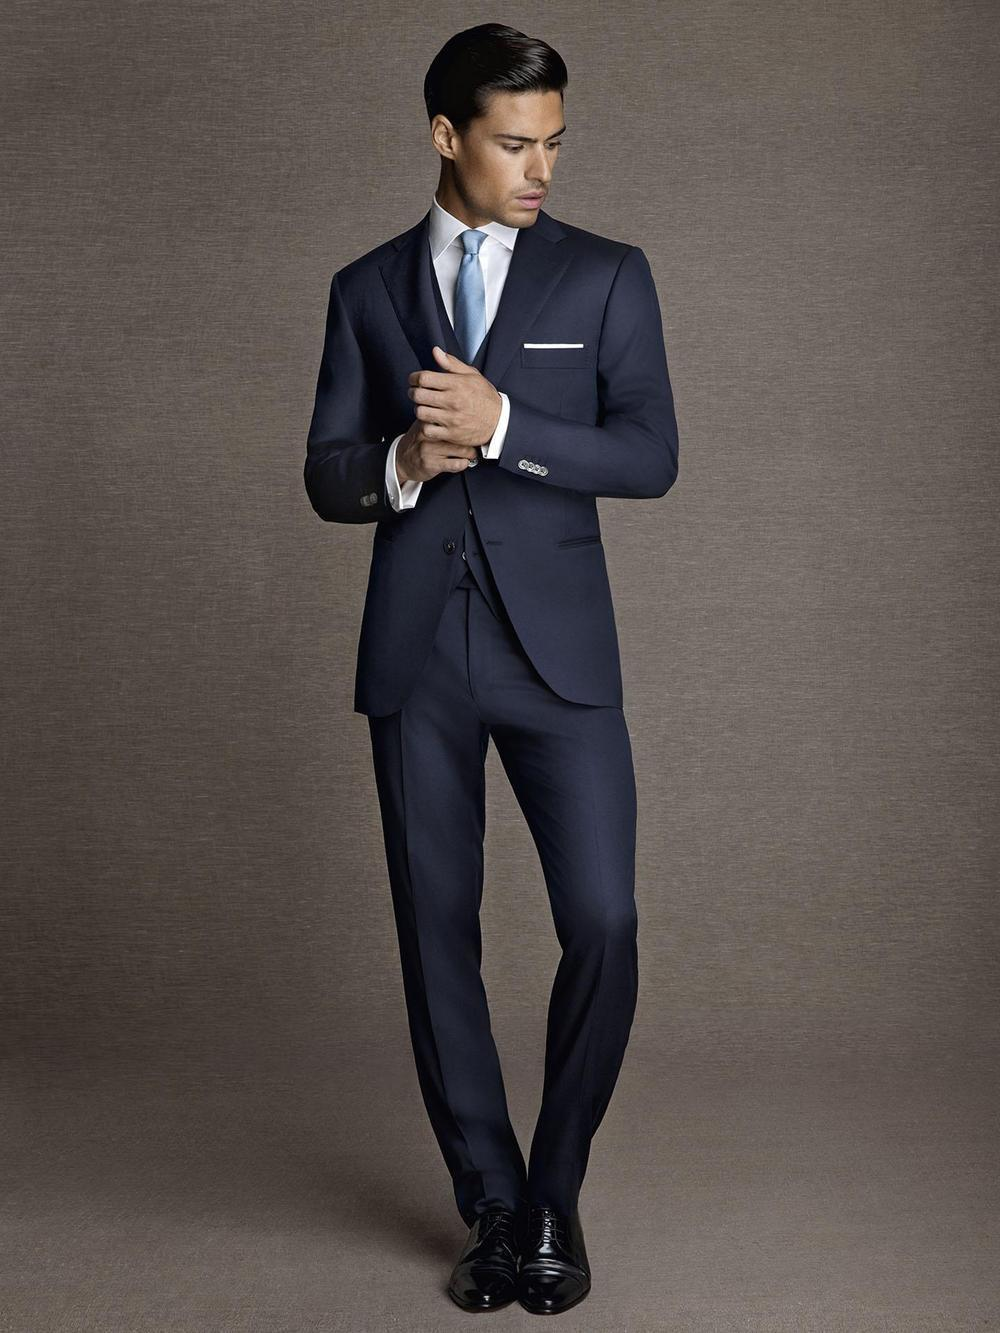 High Quality Navy Blue Suits for Men Promotion-Shop for High